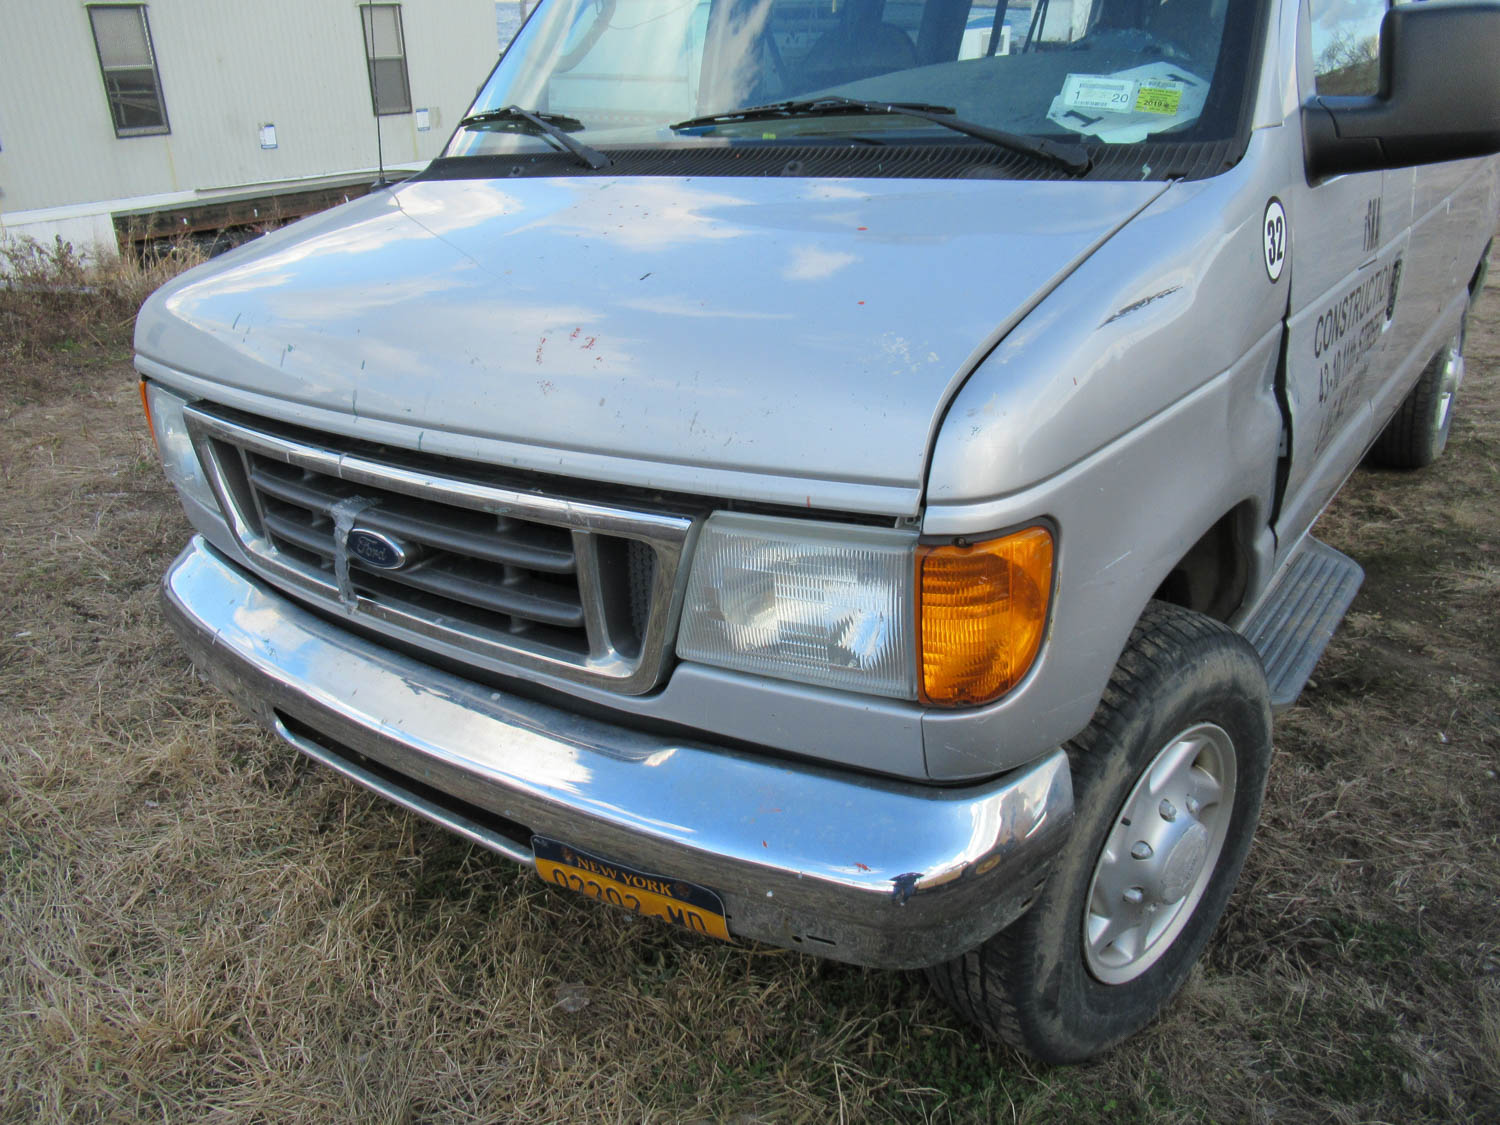 Lot 35 - 2006 FORD E-350 XLT SUPER DUTY VAN, [2] REAR BENCH SEATS, APPROXIMATELY 154,093 MILES, VIN: